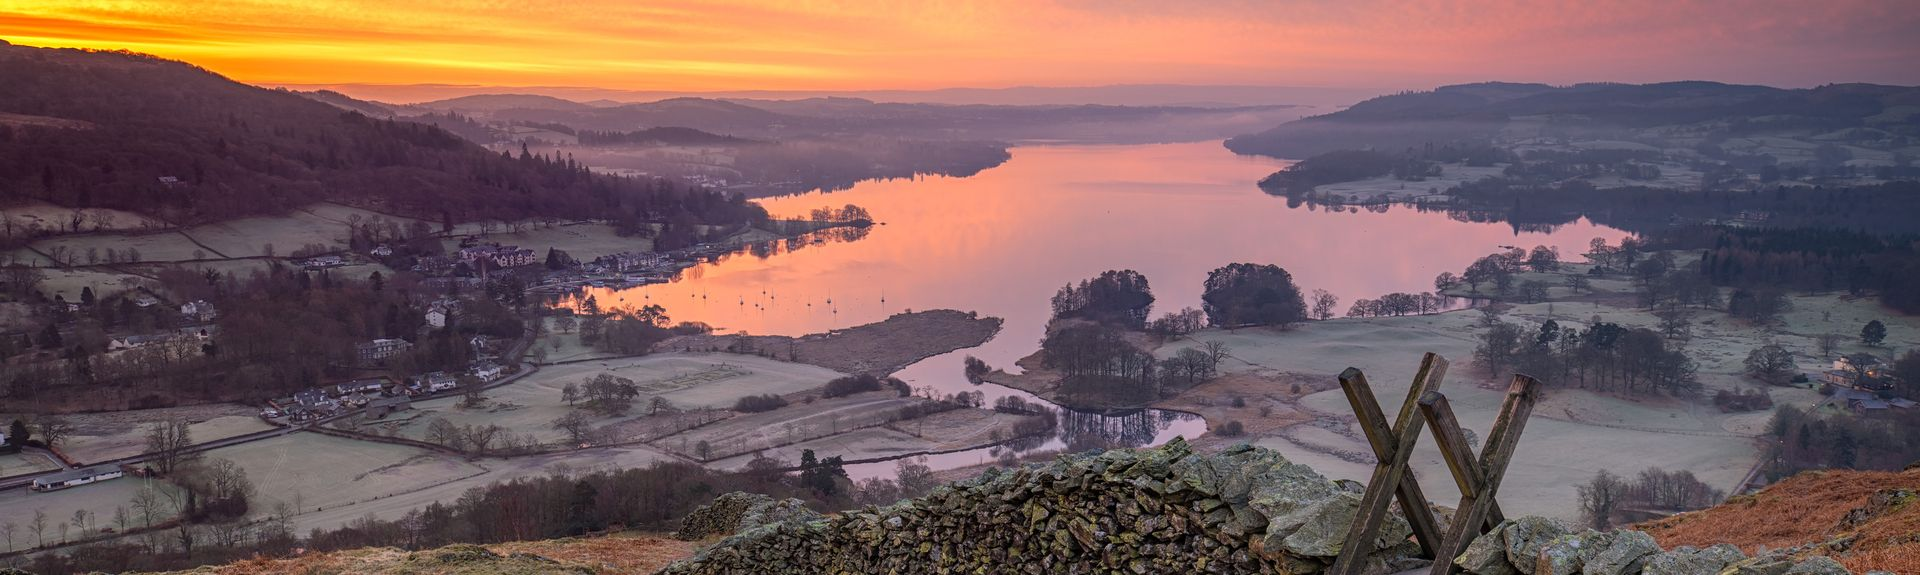 South Lakeland District, England, United Kingdom